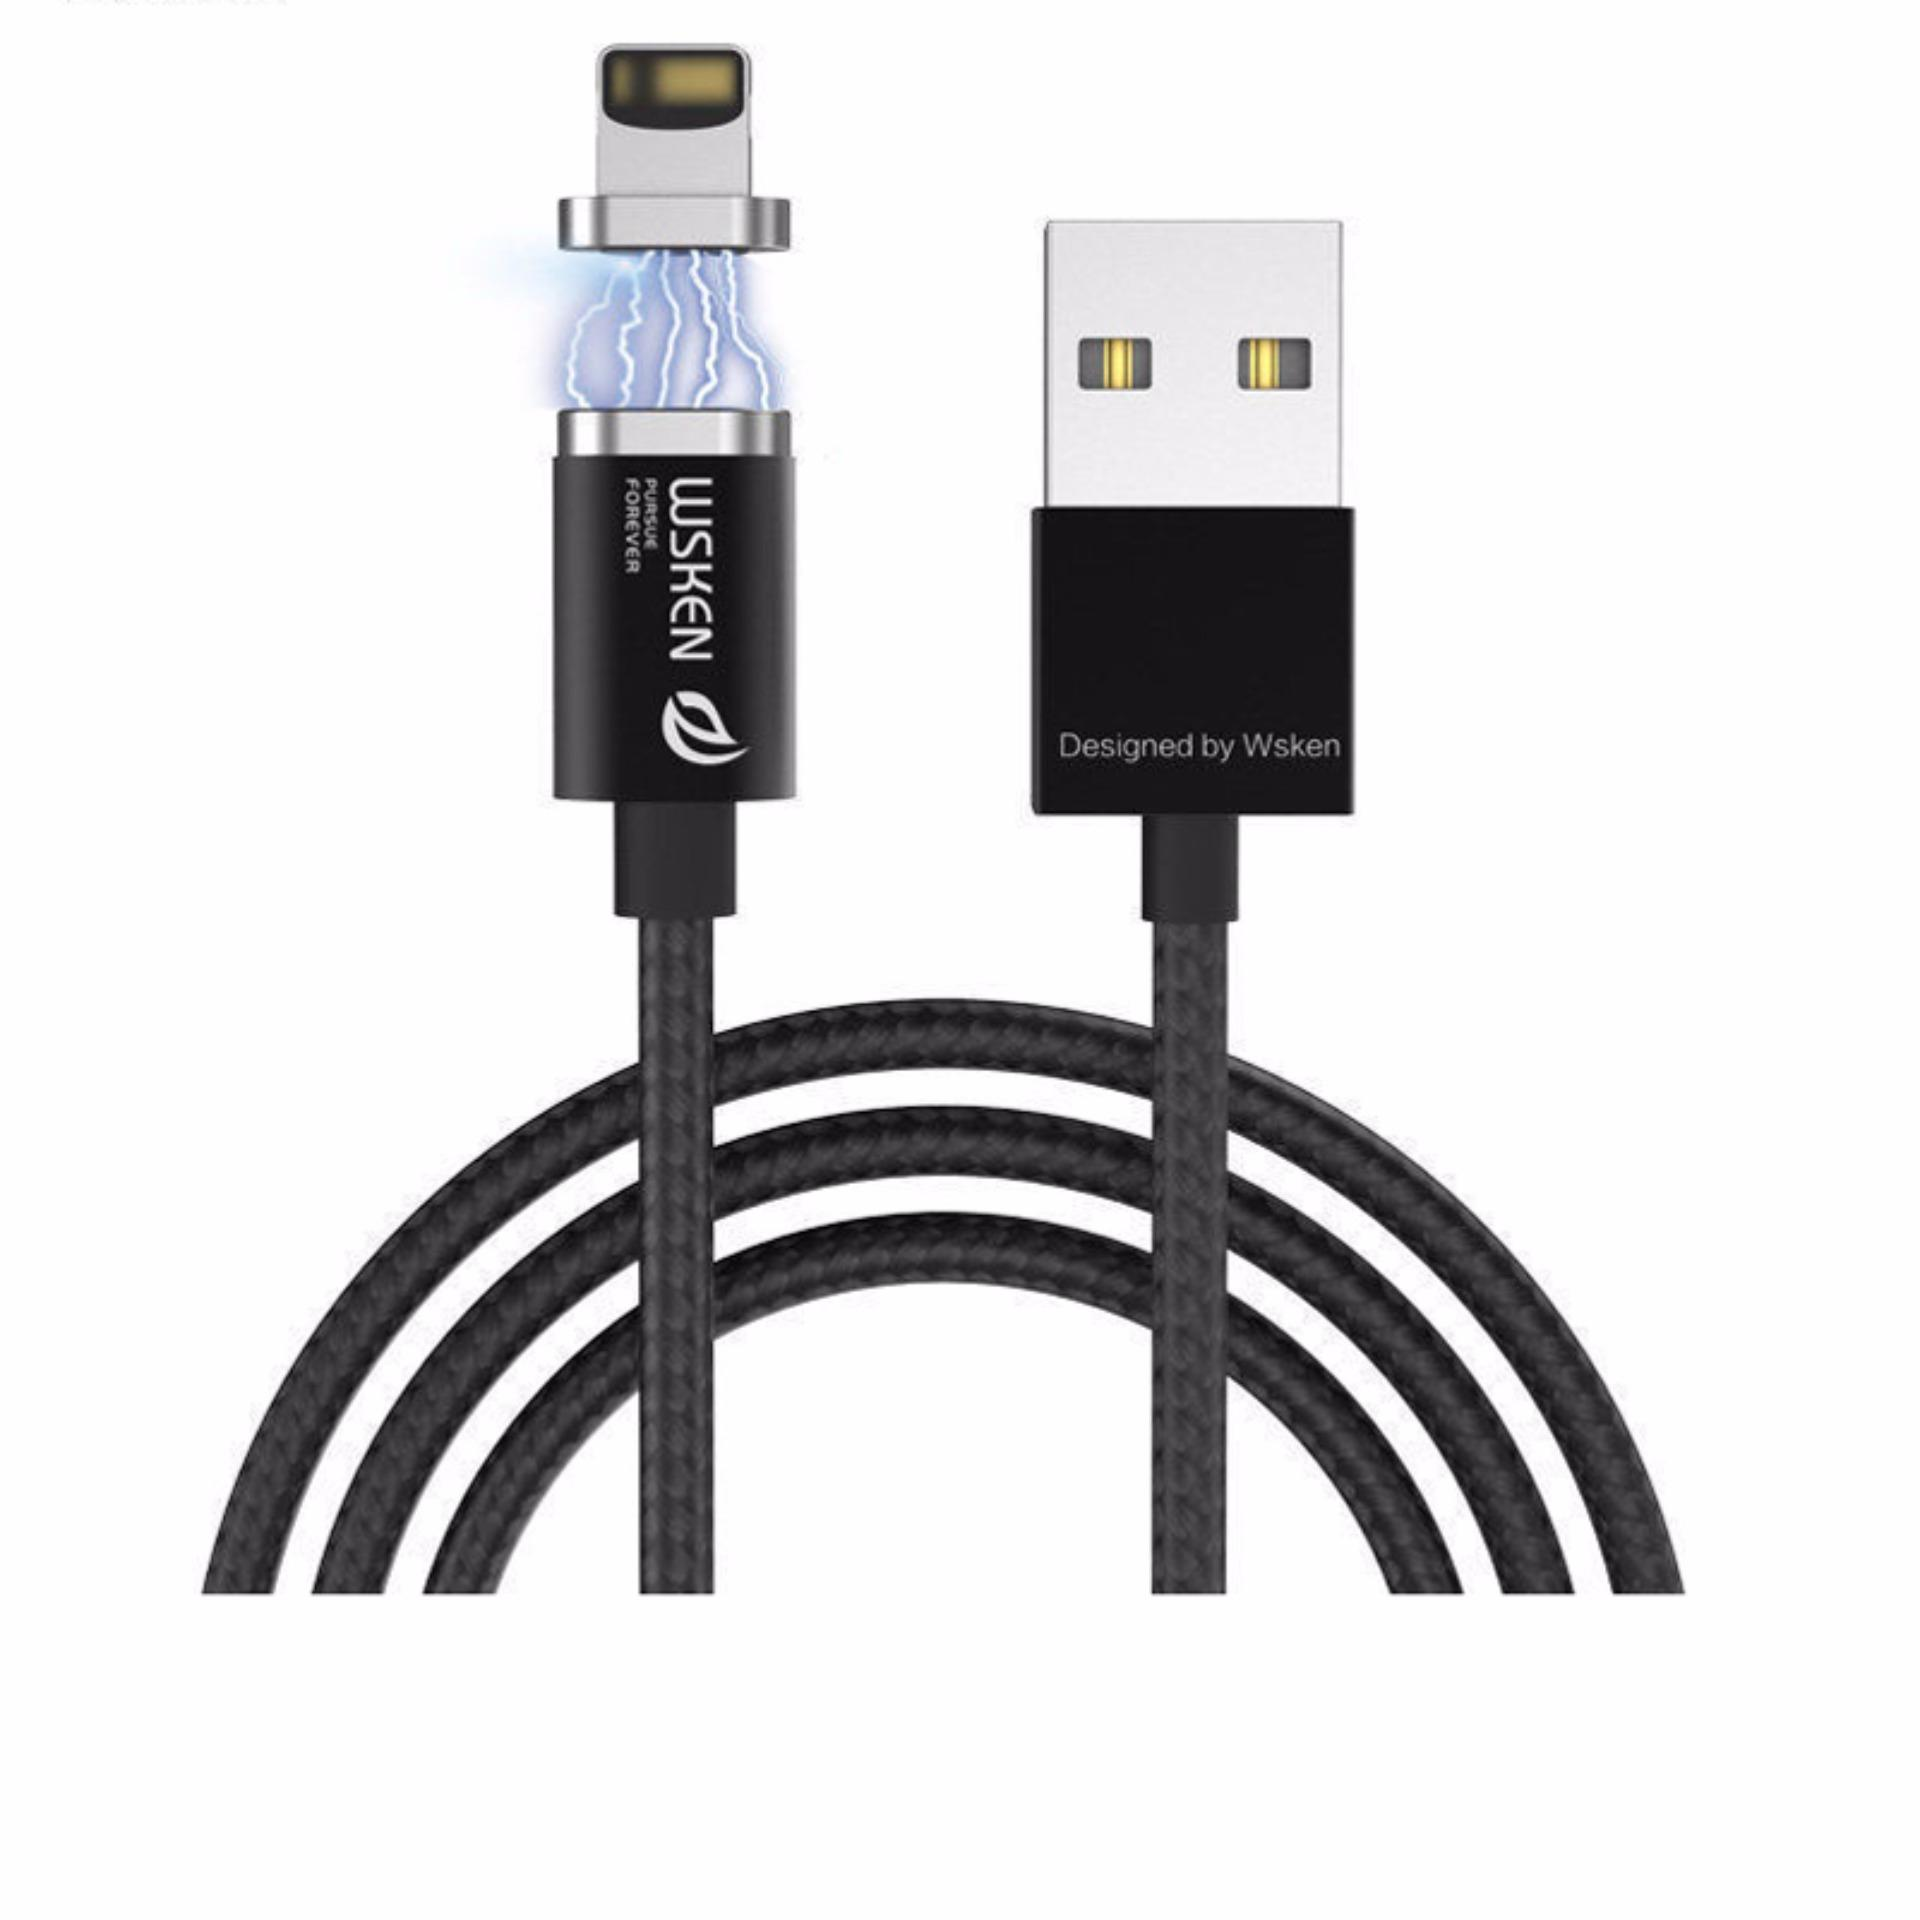 Beli Wsken X Cable Mini 2 Micro Usb And Lightning Magnetic Charging Cable Blackt Wsken Asli